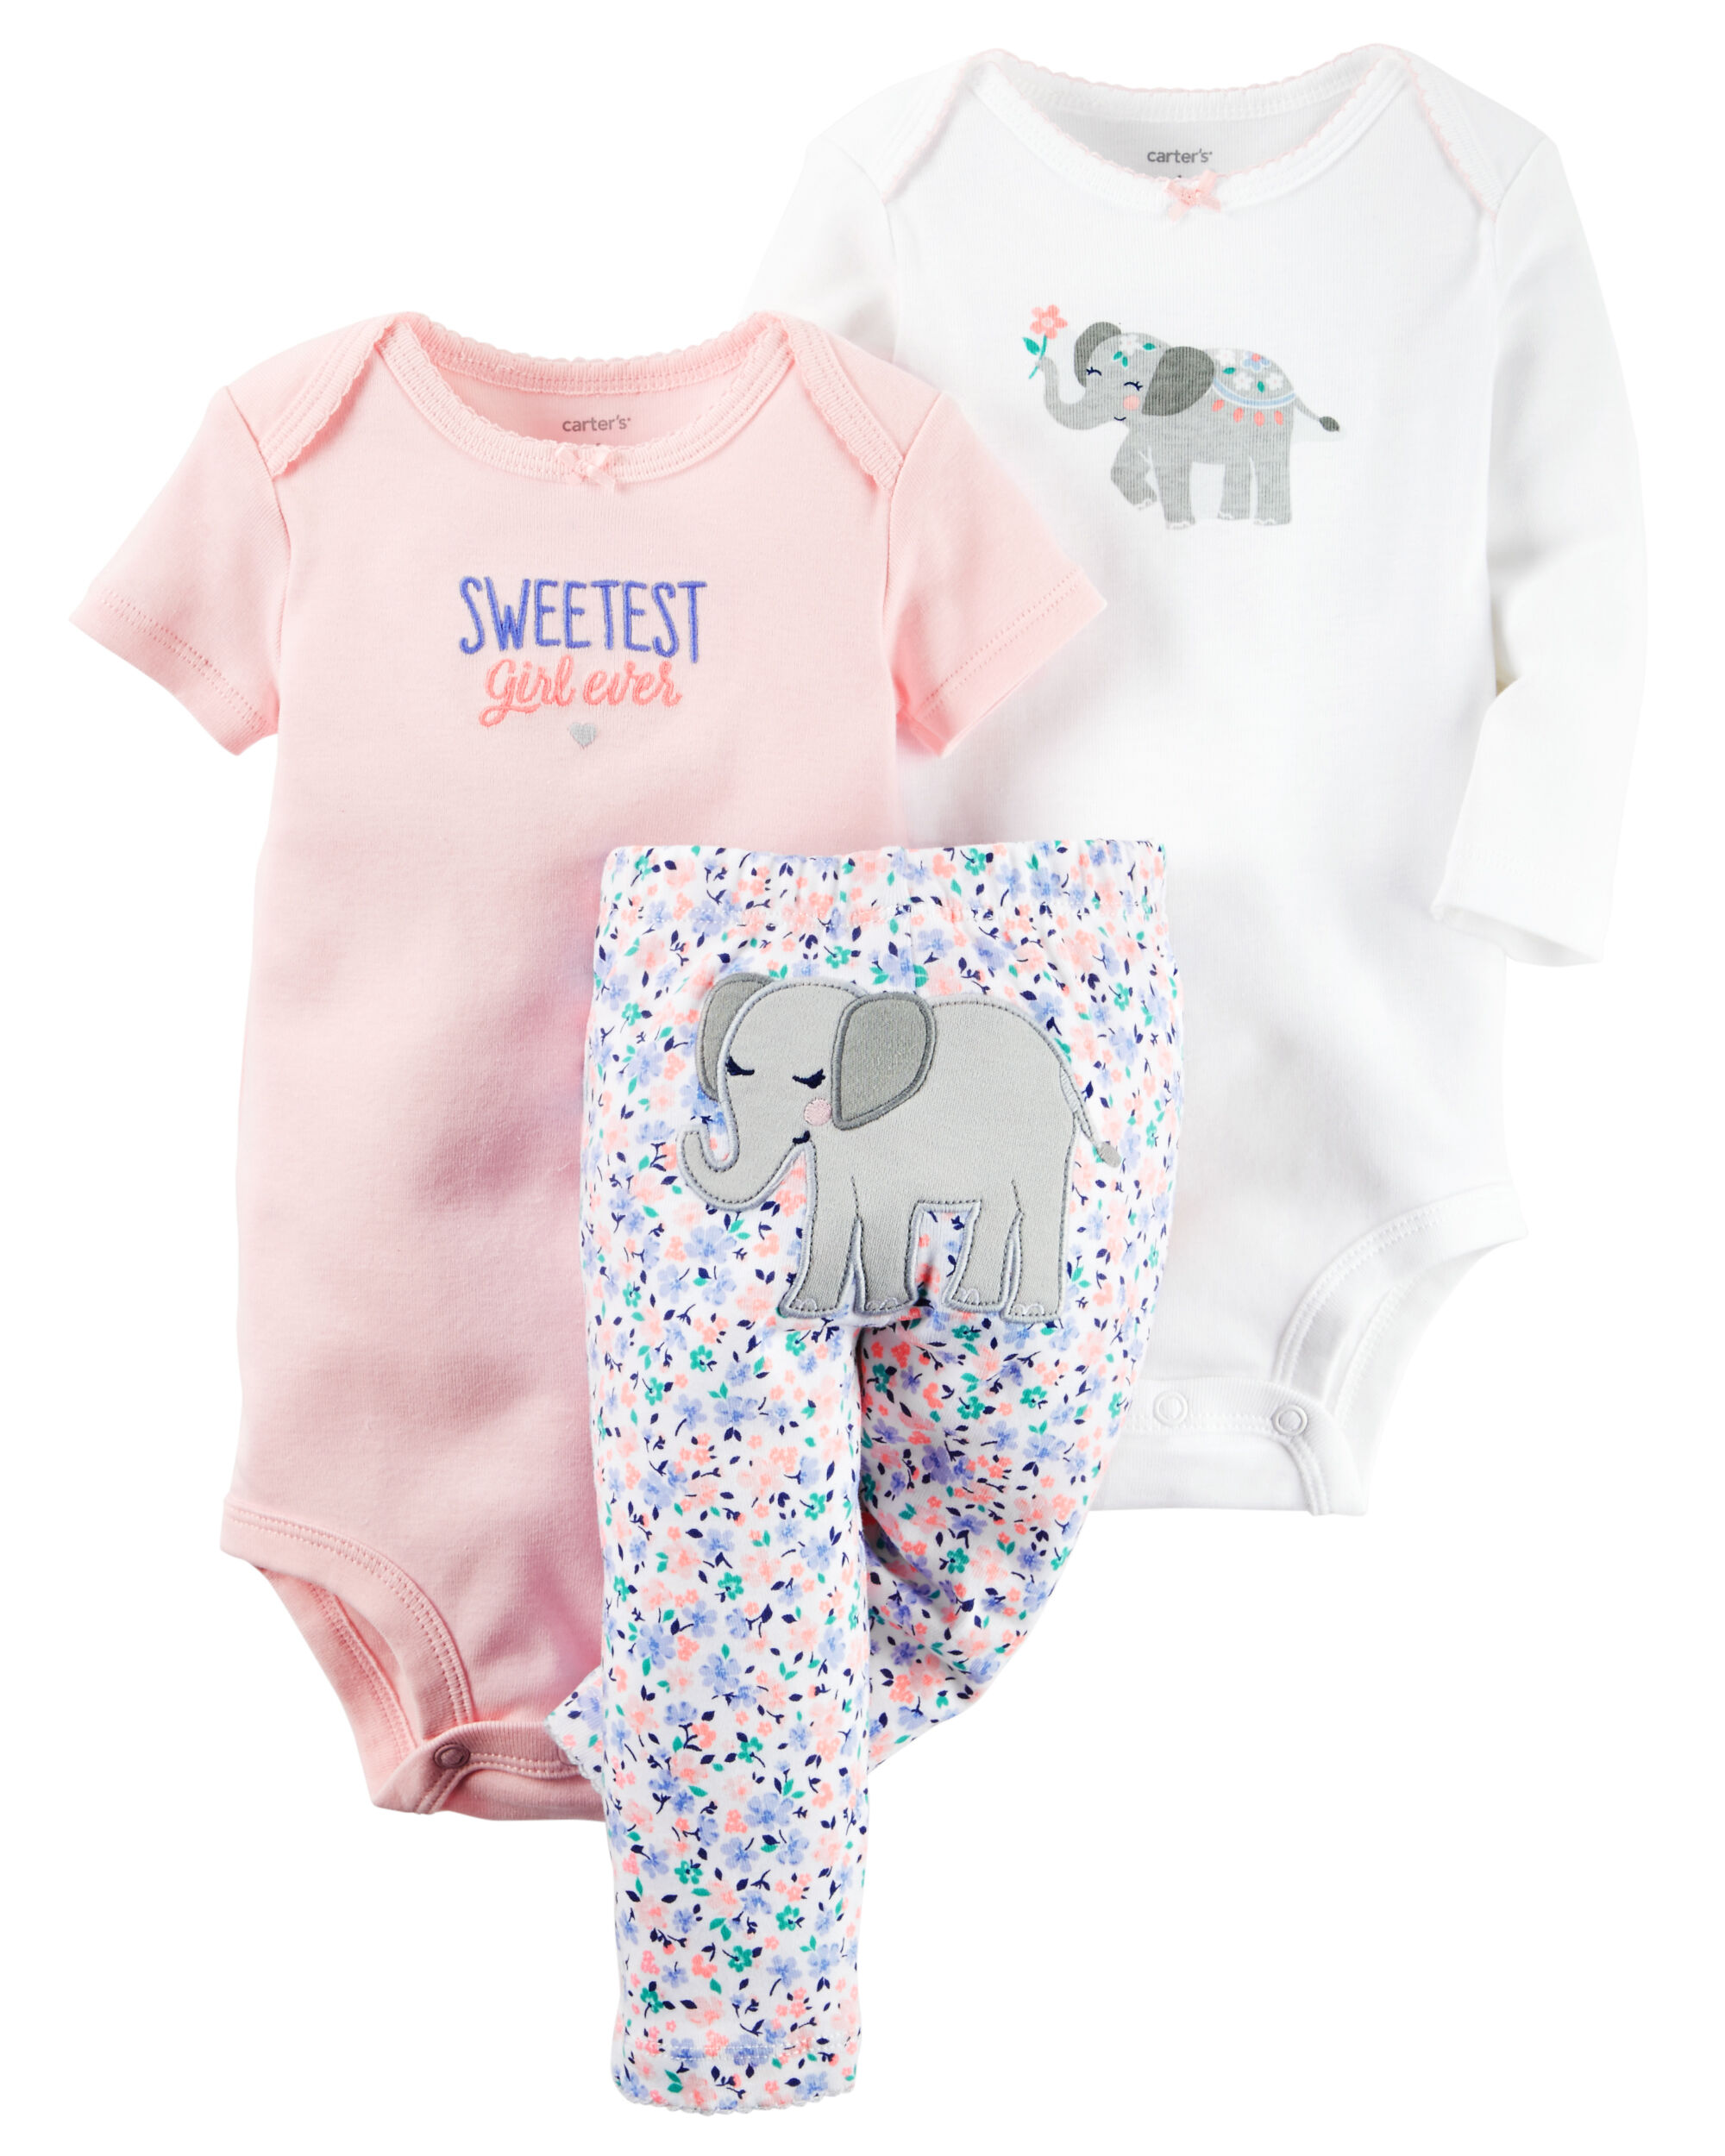 Carters Clothes Baby Girl Newest and Cutest Baby Clothing